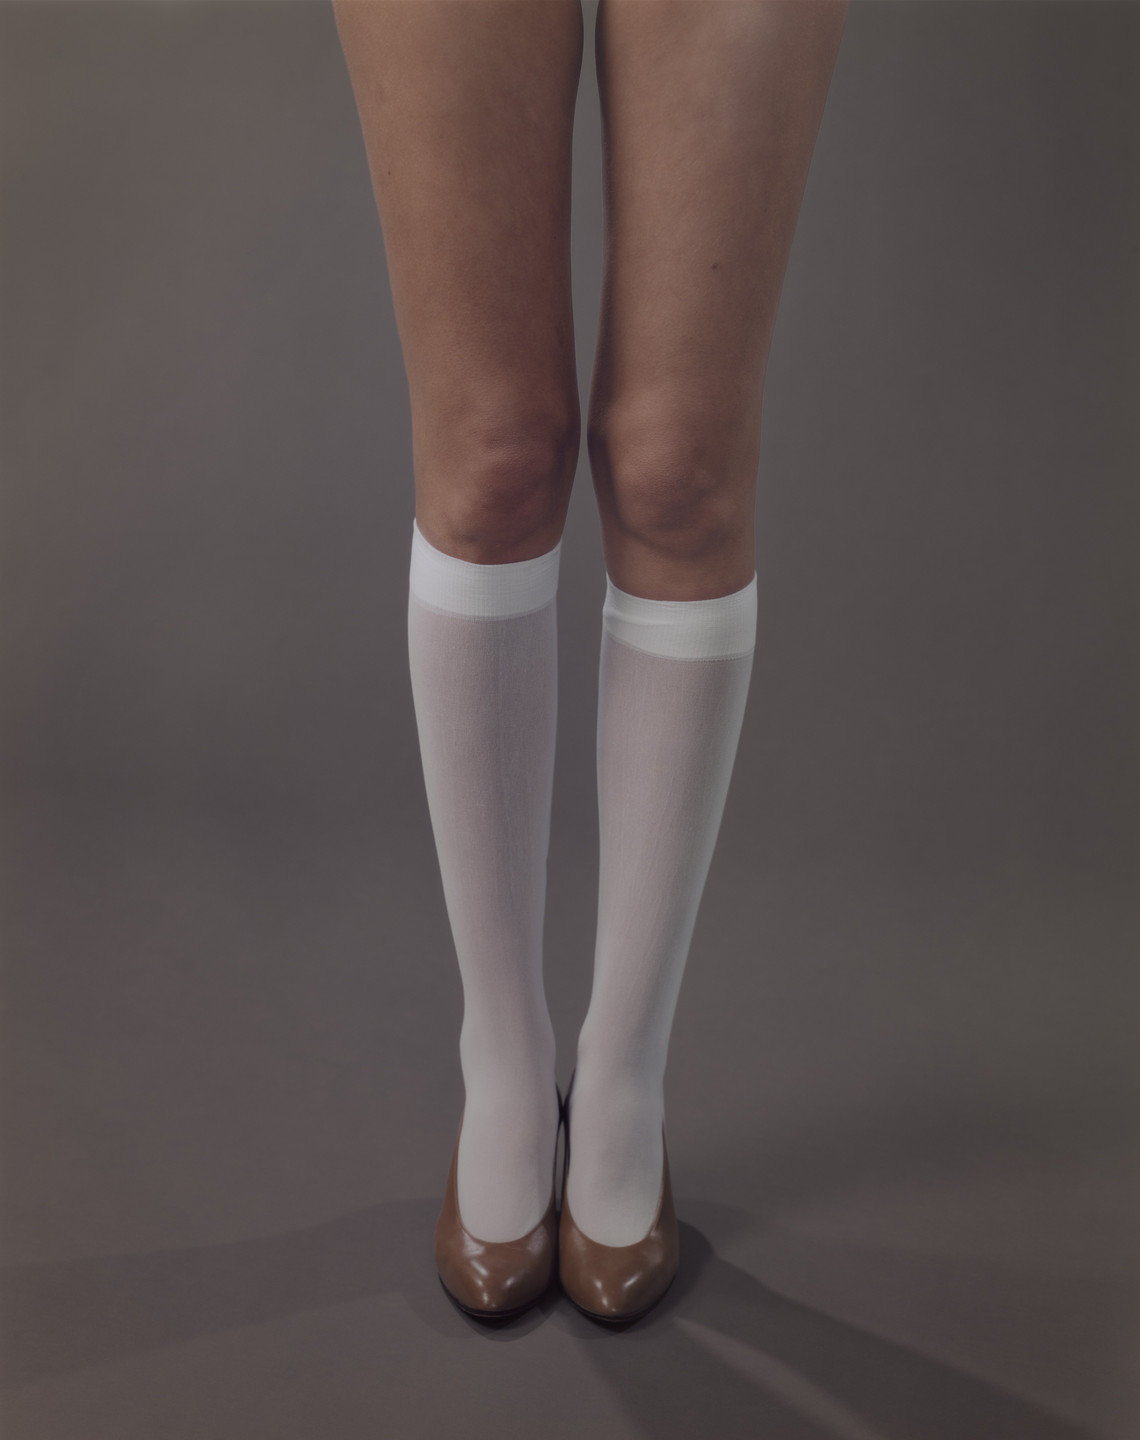 Josephine Meckseper. Blow-Up (Michelli, Knee-Highs). 2006